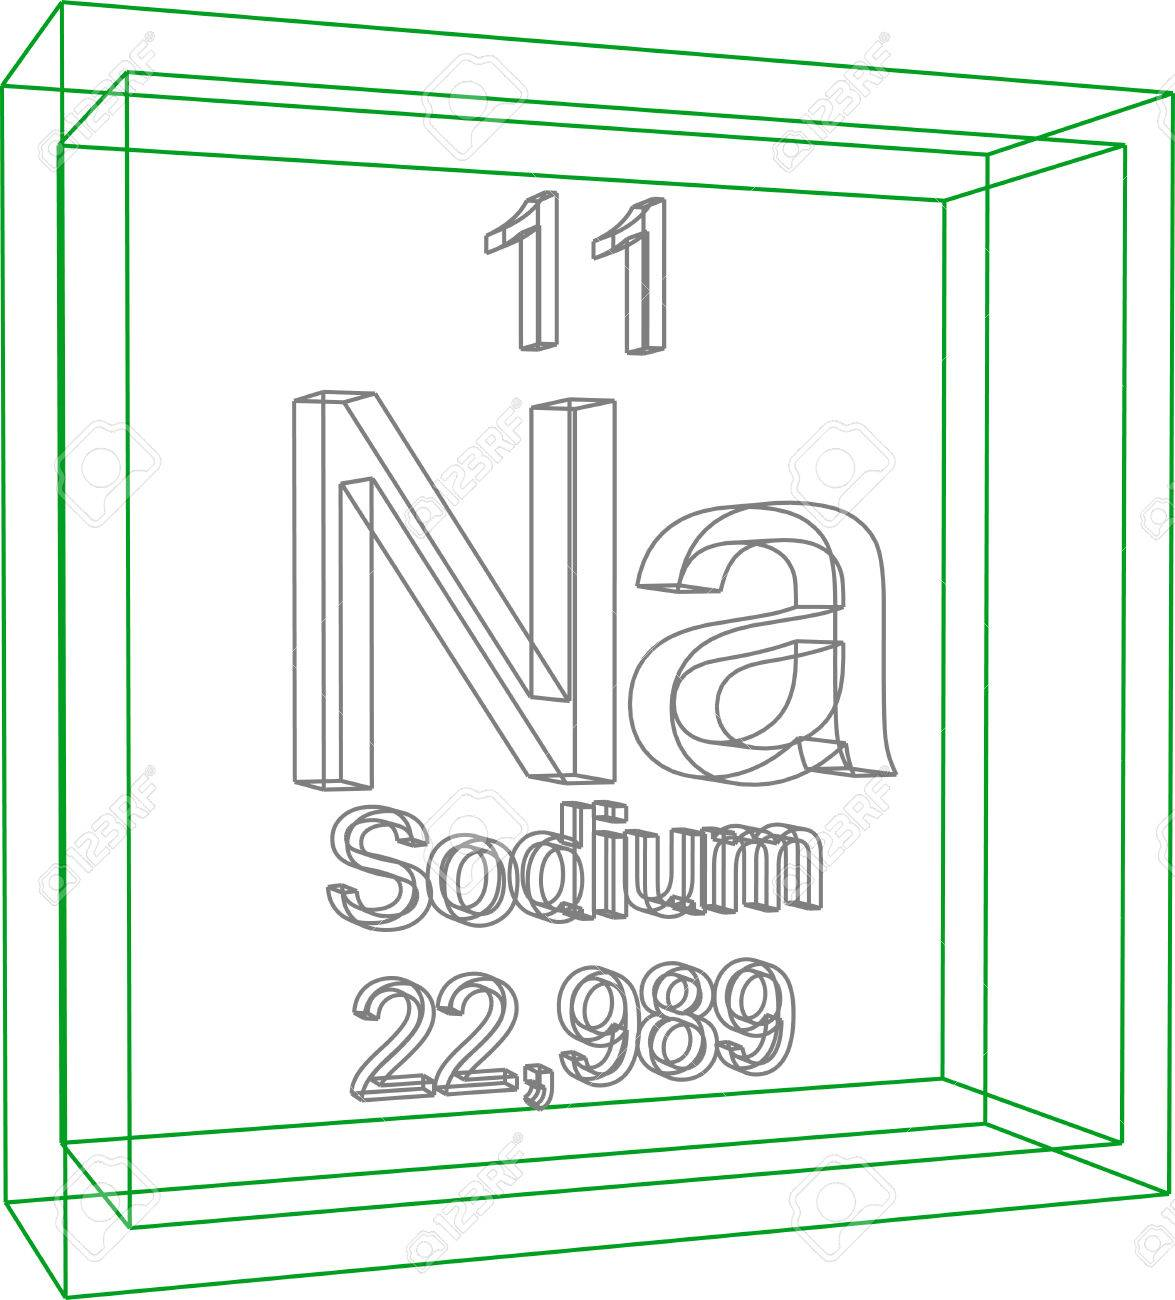 Periodic table of elements sodium images periodic table images periodic table of elements sodium gallery periodic table images periodic table of elements sodium royalty free gamestrikefo Images